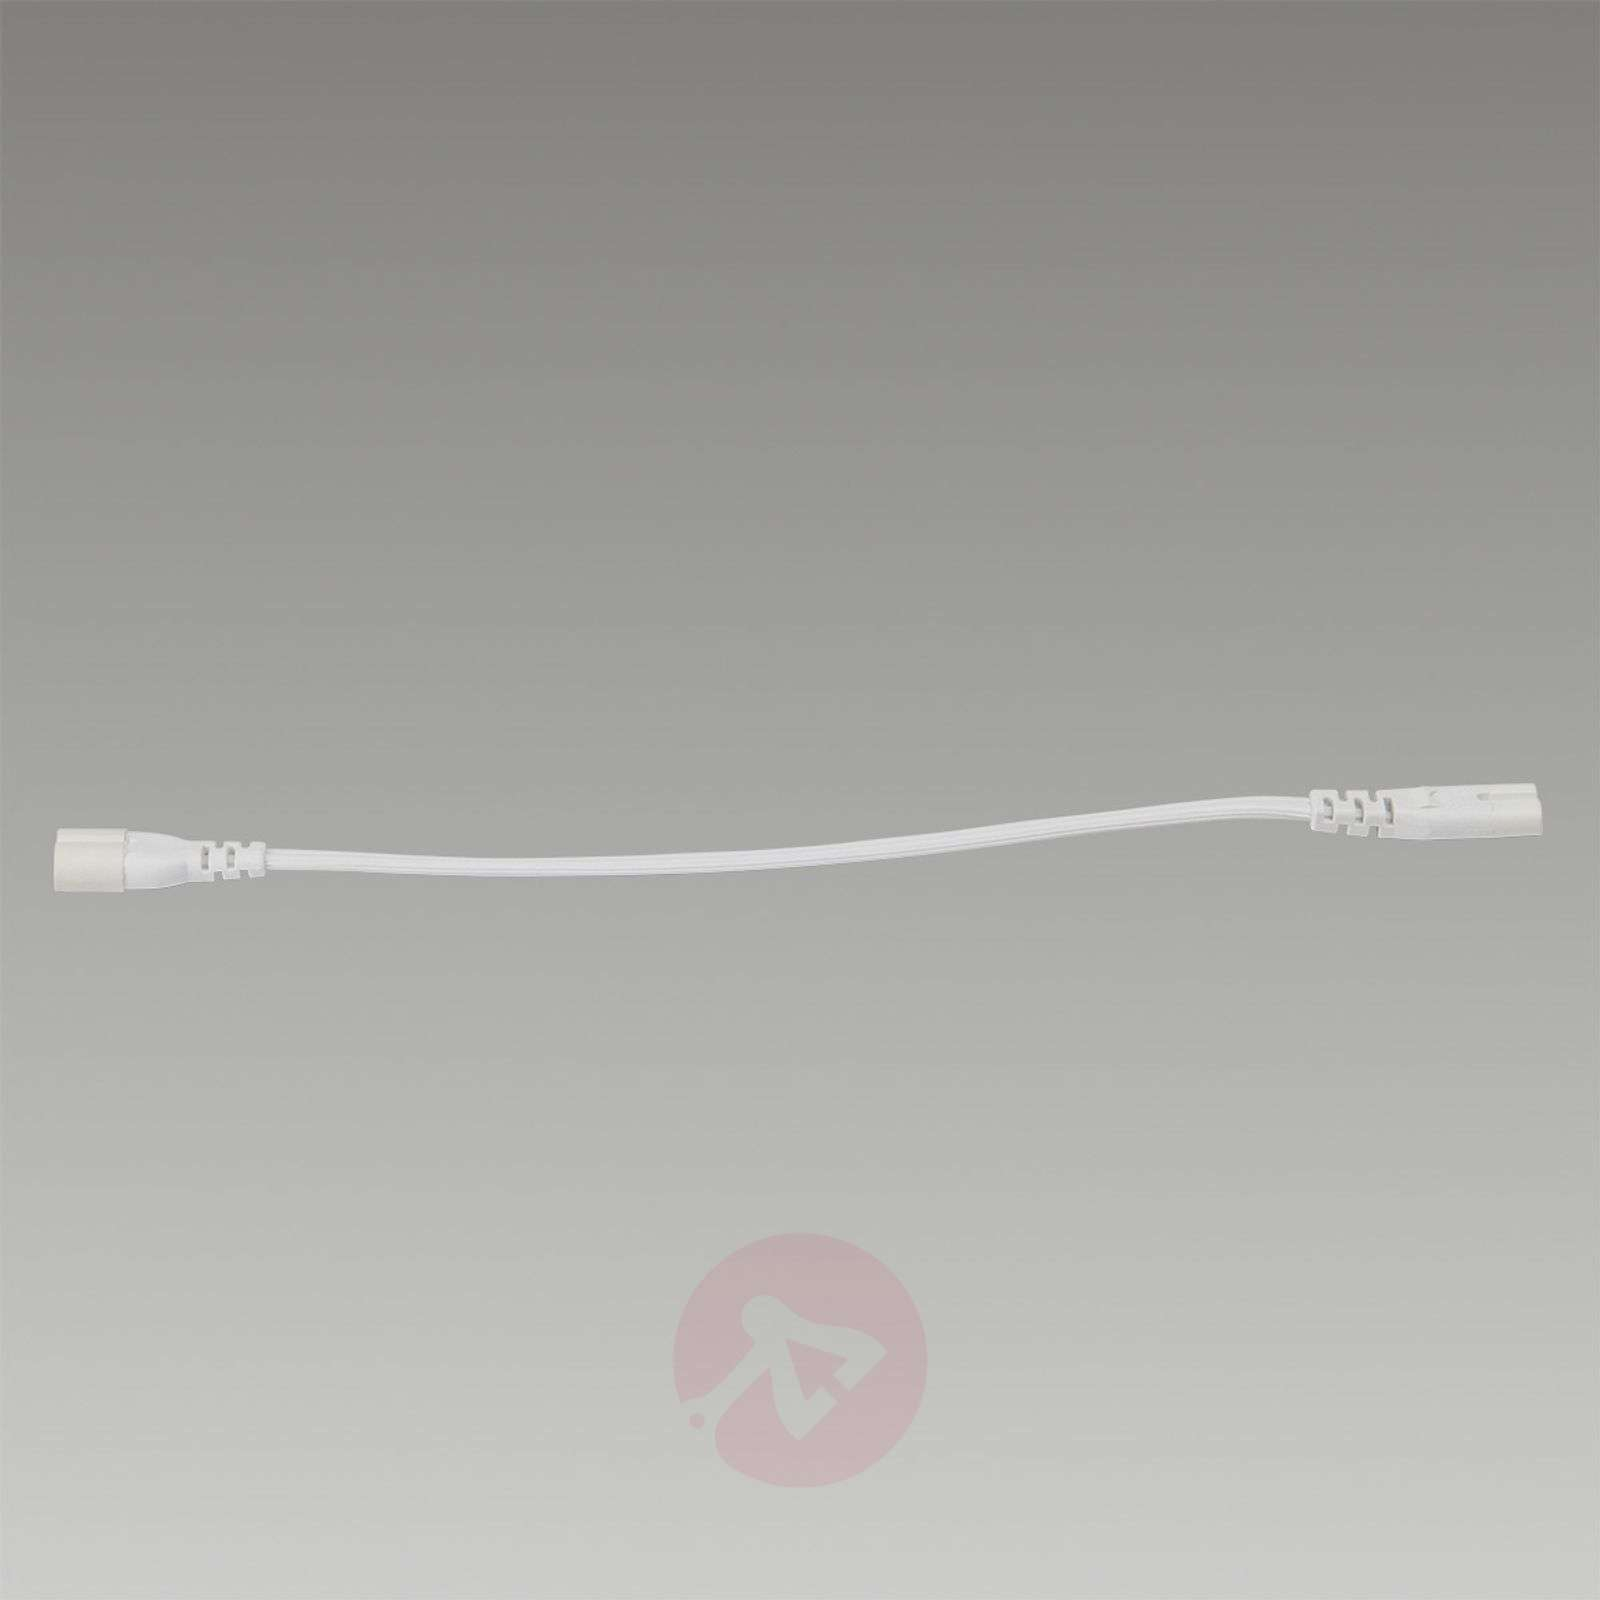 Conector flexible para AEG LED Cove Light, 30 cm-3057022-01